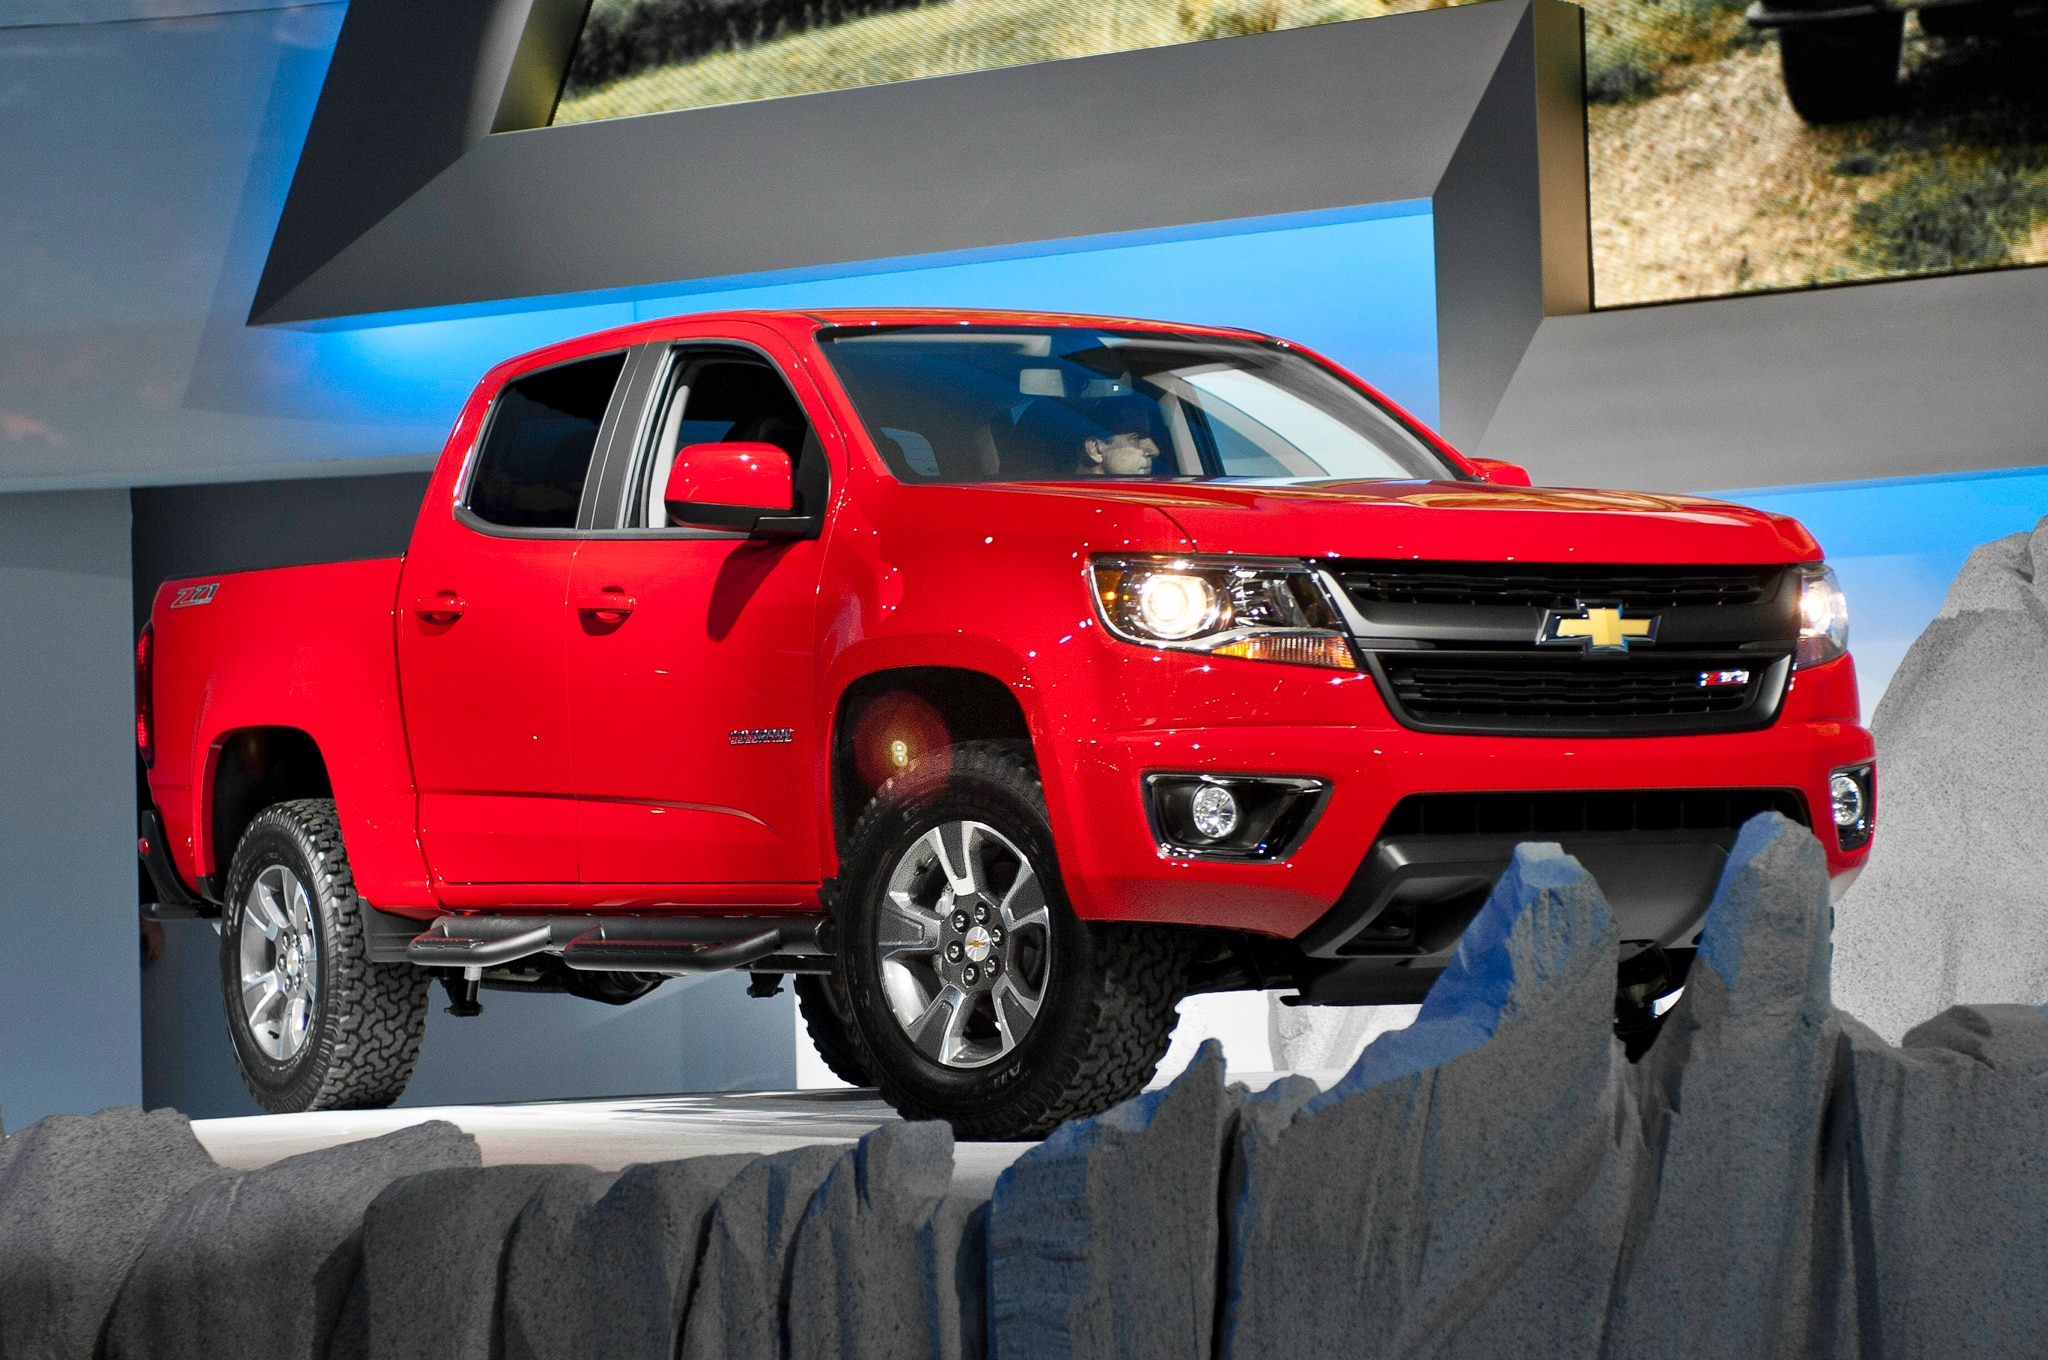 2015 Chevrolet Colorado front three quarters view